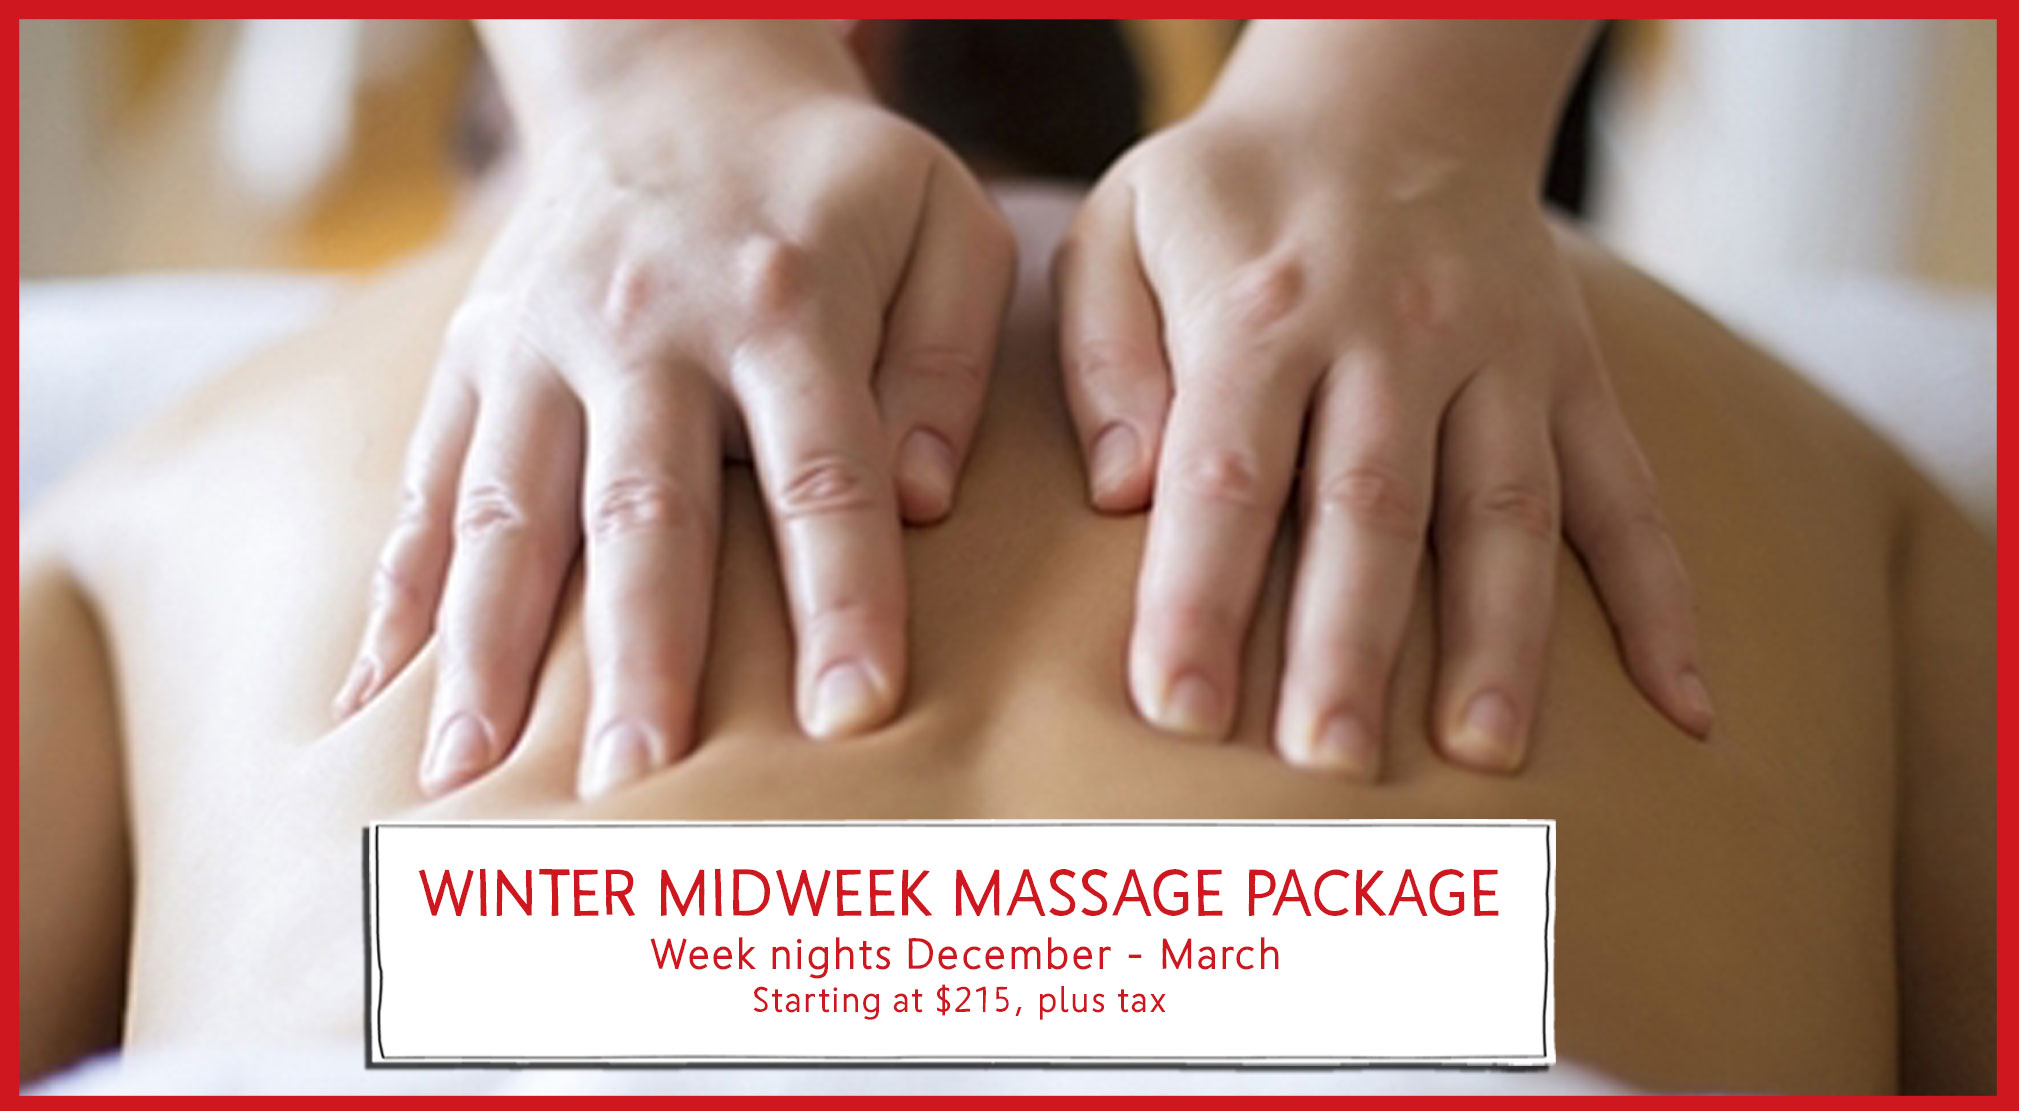 Winter Midweek Massage Package at Race Brook Lodge